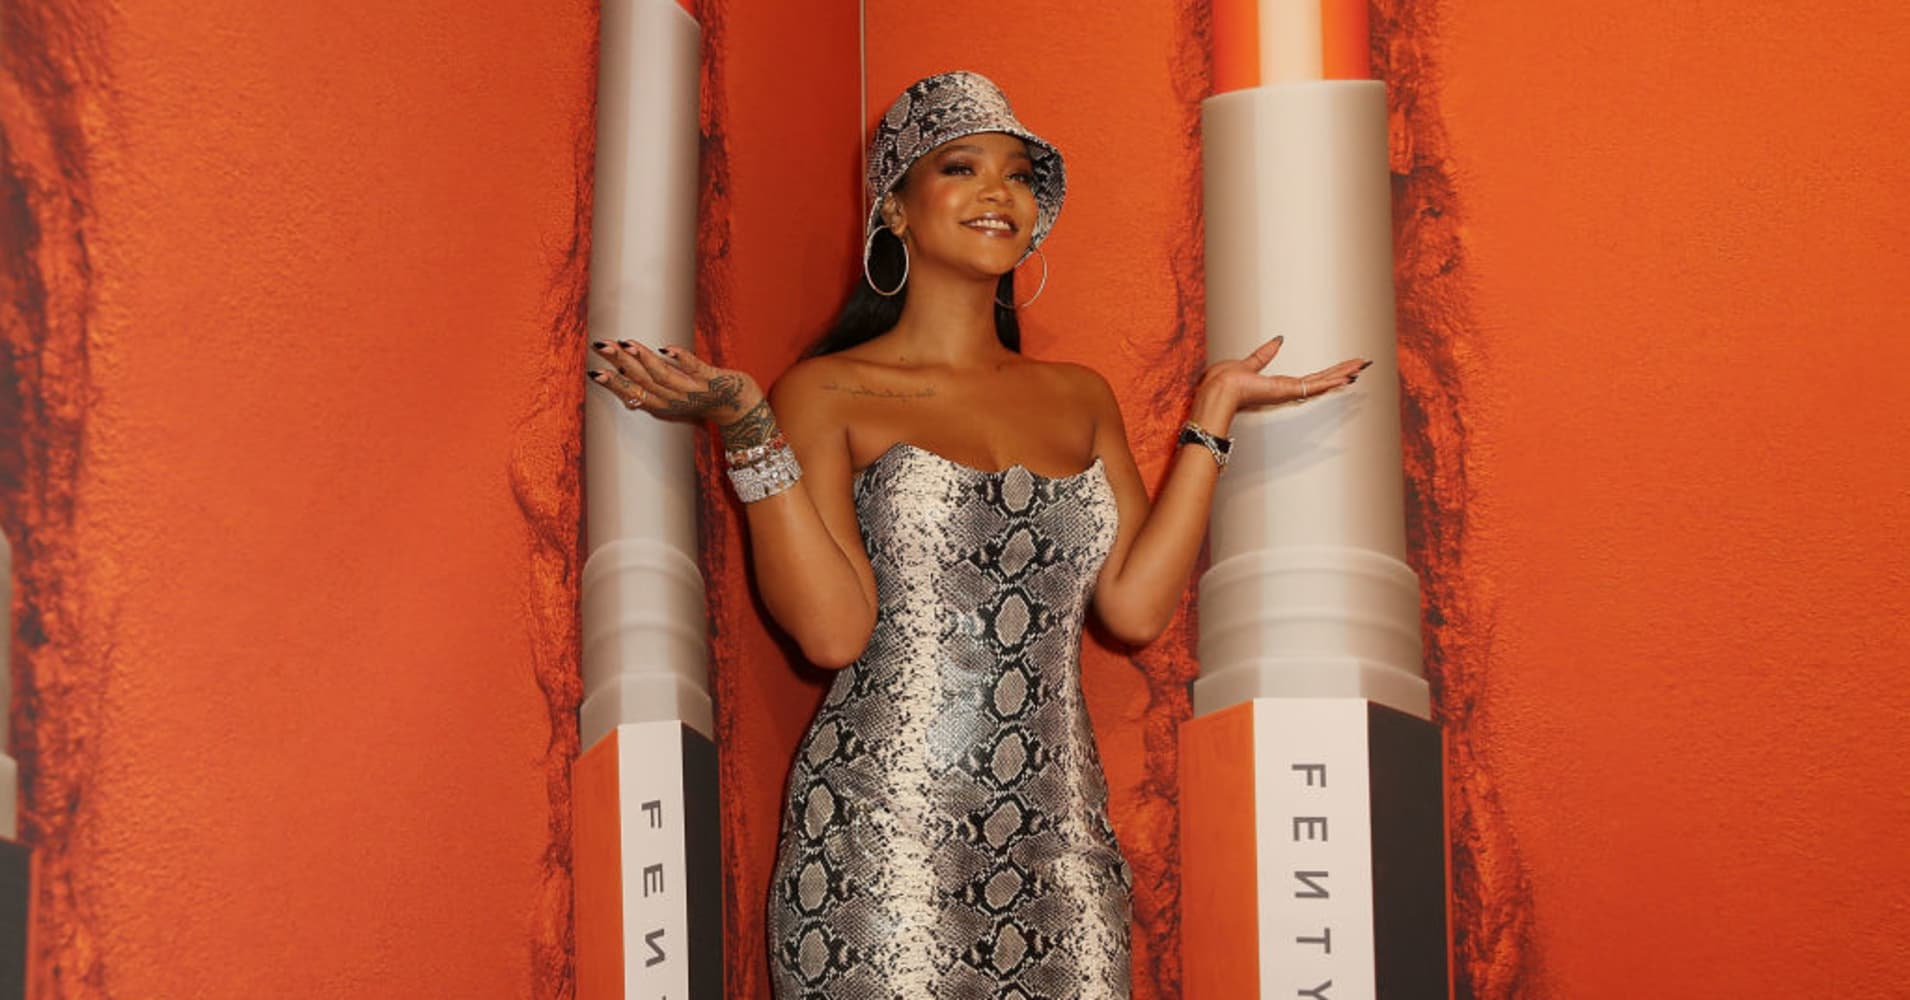 Rihanna sues her father Ronald over use of their surname 'Fenty'